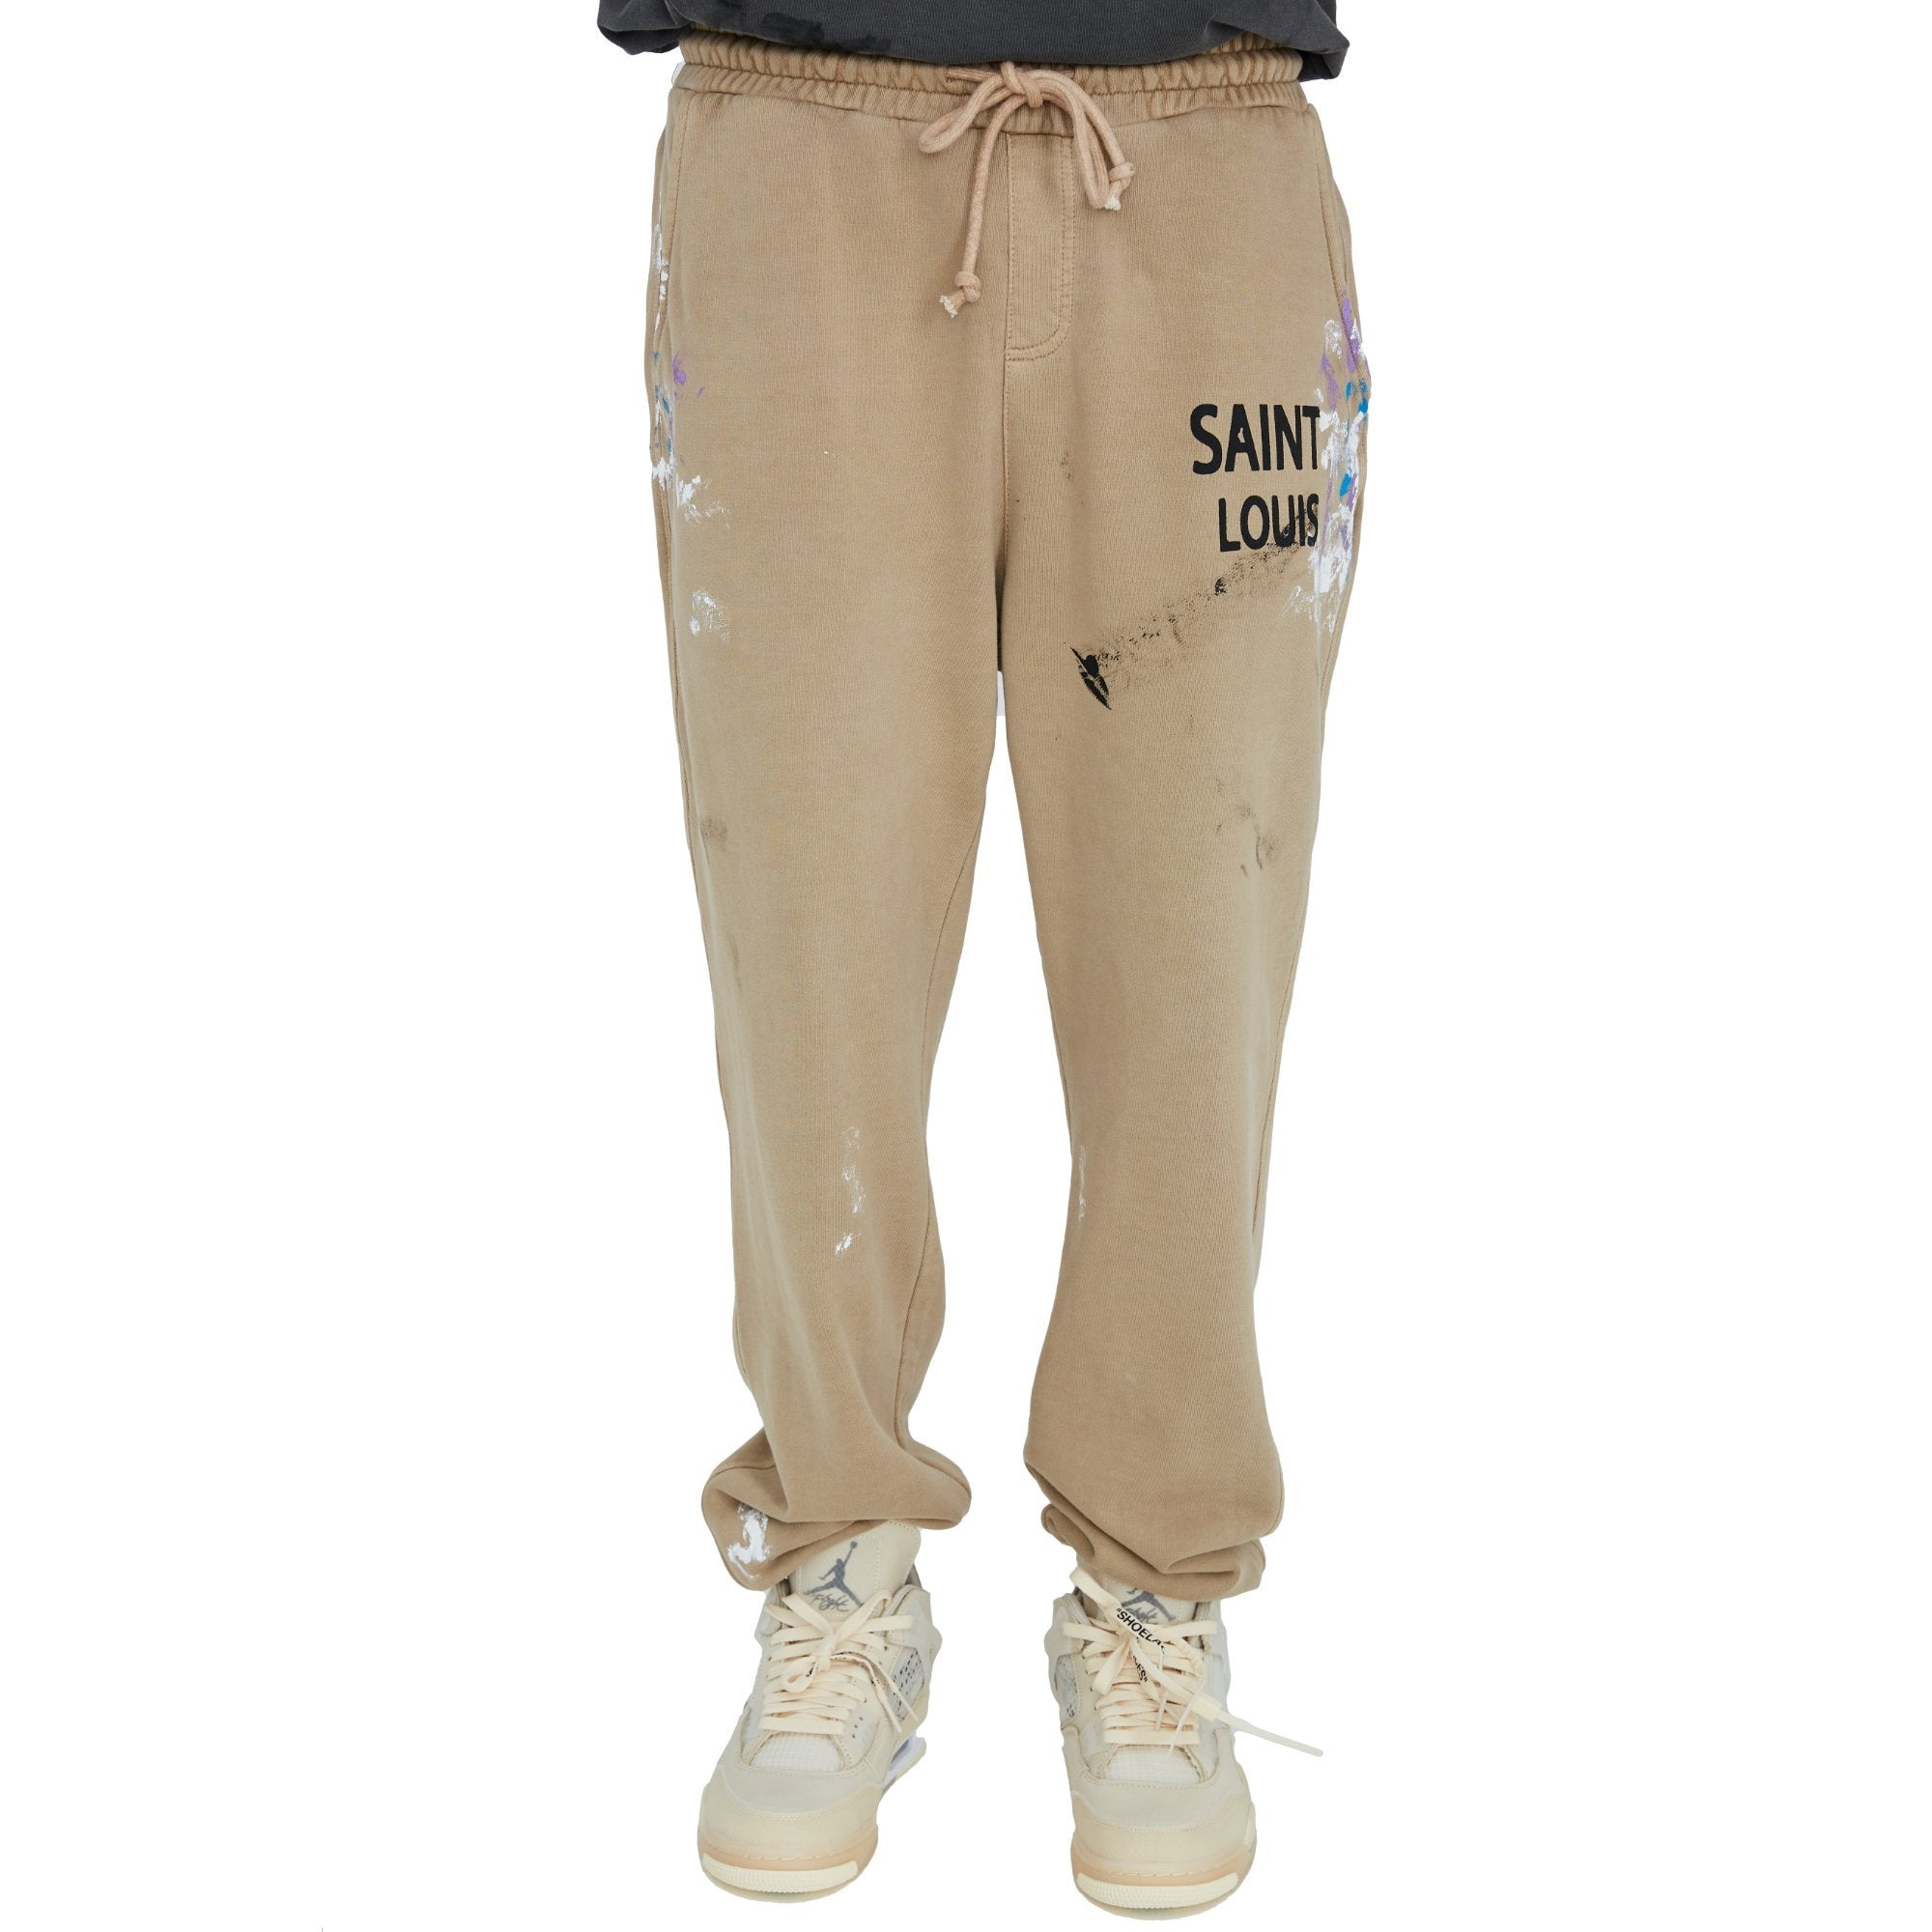 SAINT LOUIS Vintage Tan Sweat Pant | MADA IN CHINA